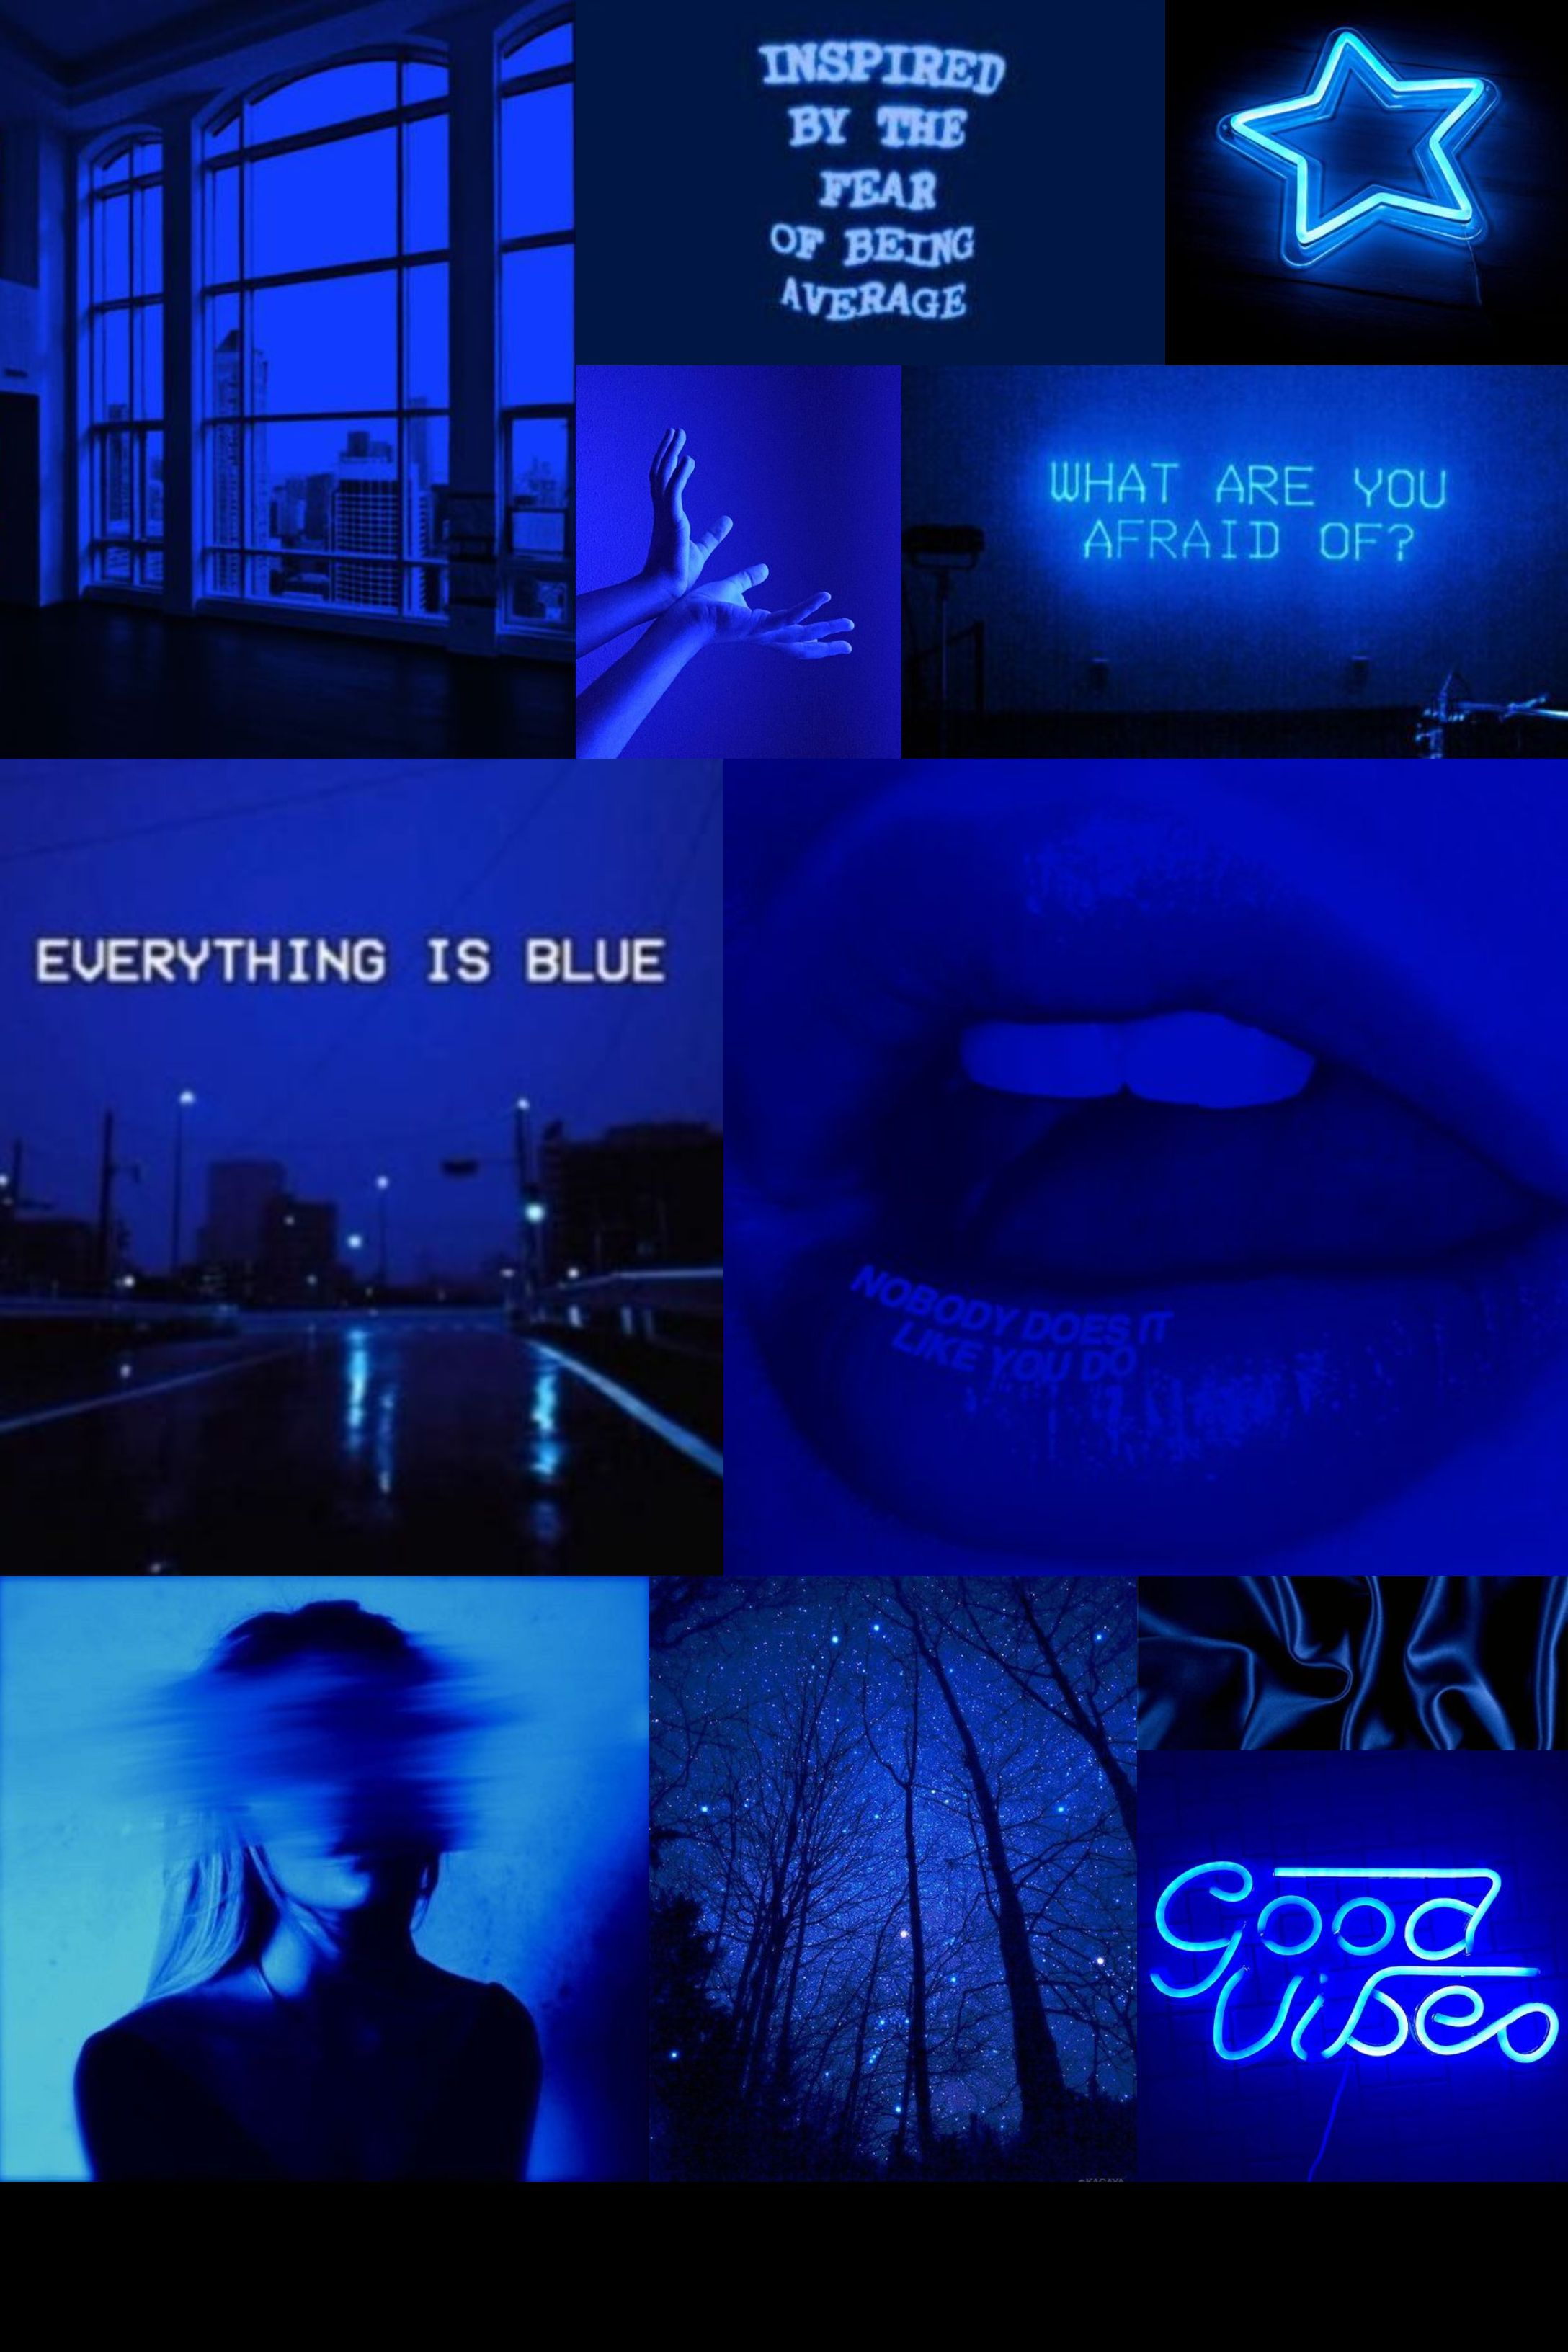 Blue Mood Board Aesthetic Collage Wallpaper Blue Aesthetic Dark Dark Blue Wallpaper Blue Aesthetic